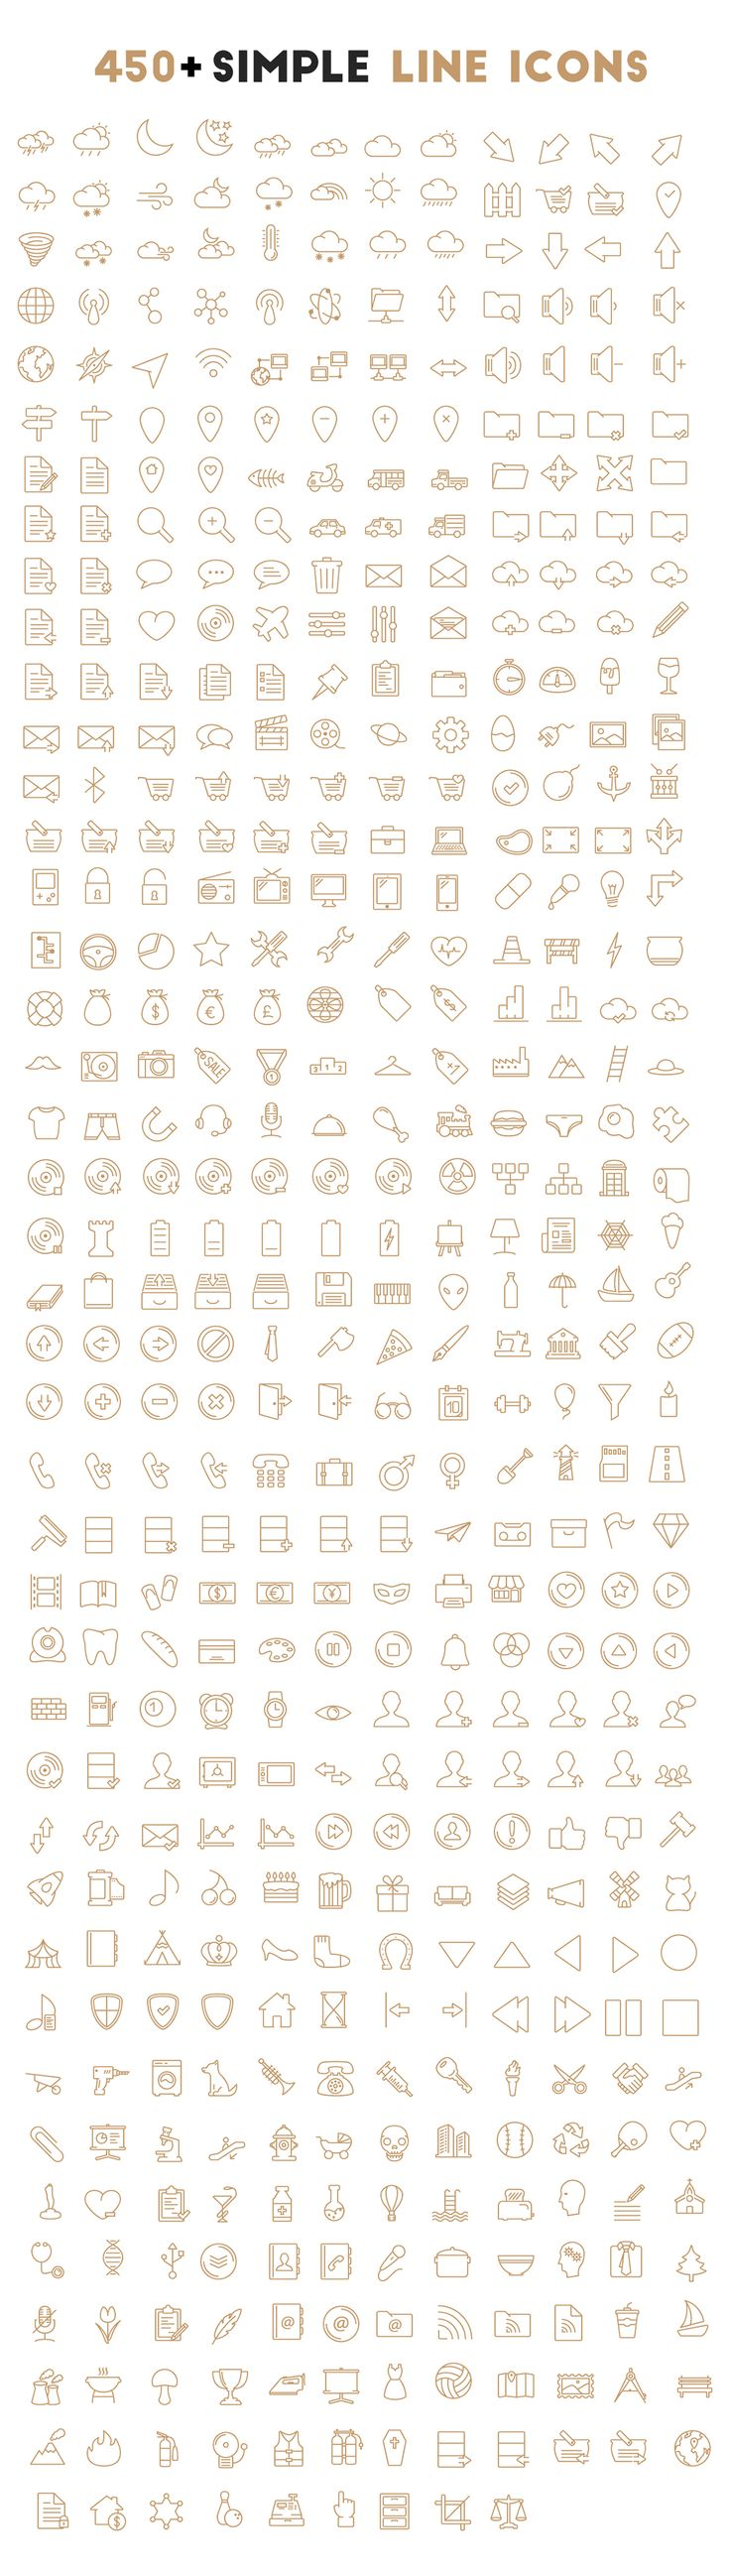 Outline Icons set which consists of 450+ vector icons. The download package contains AI/EPS of all icons and SVG file format for individual icons!